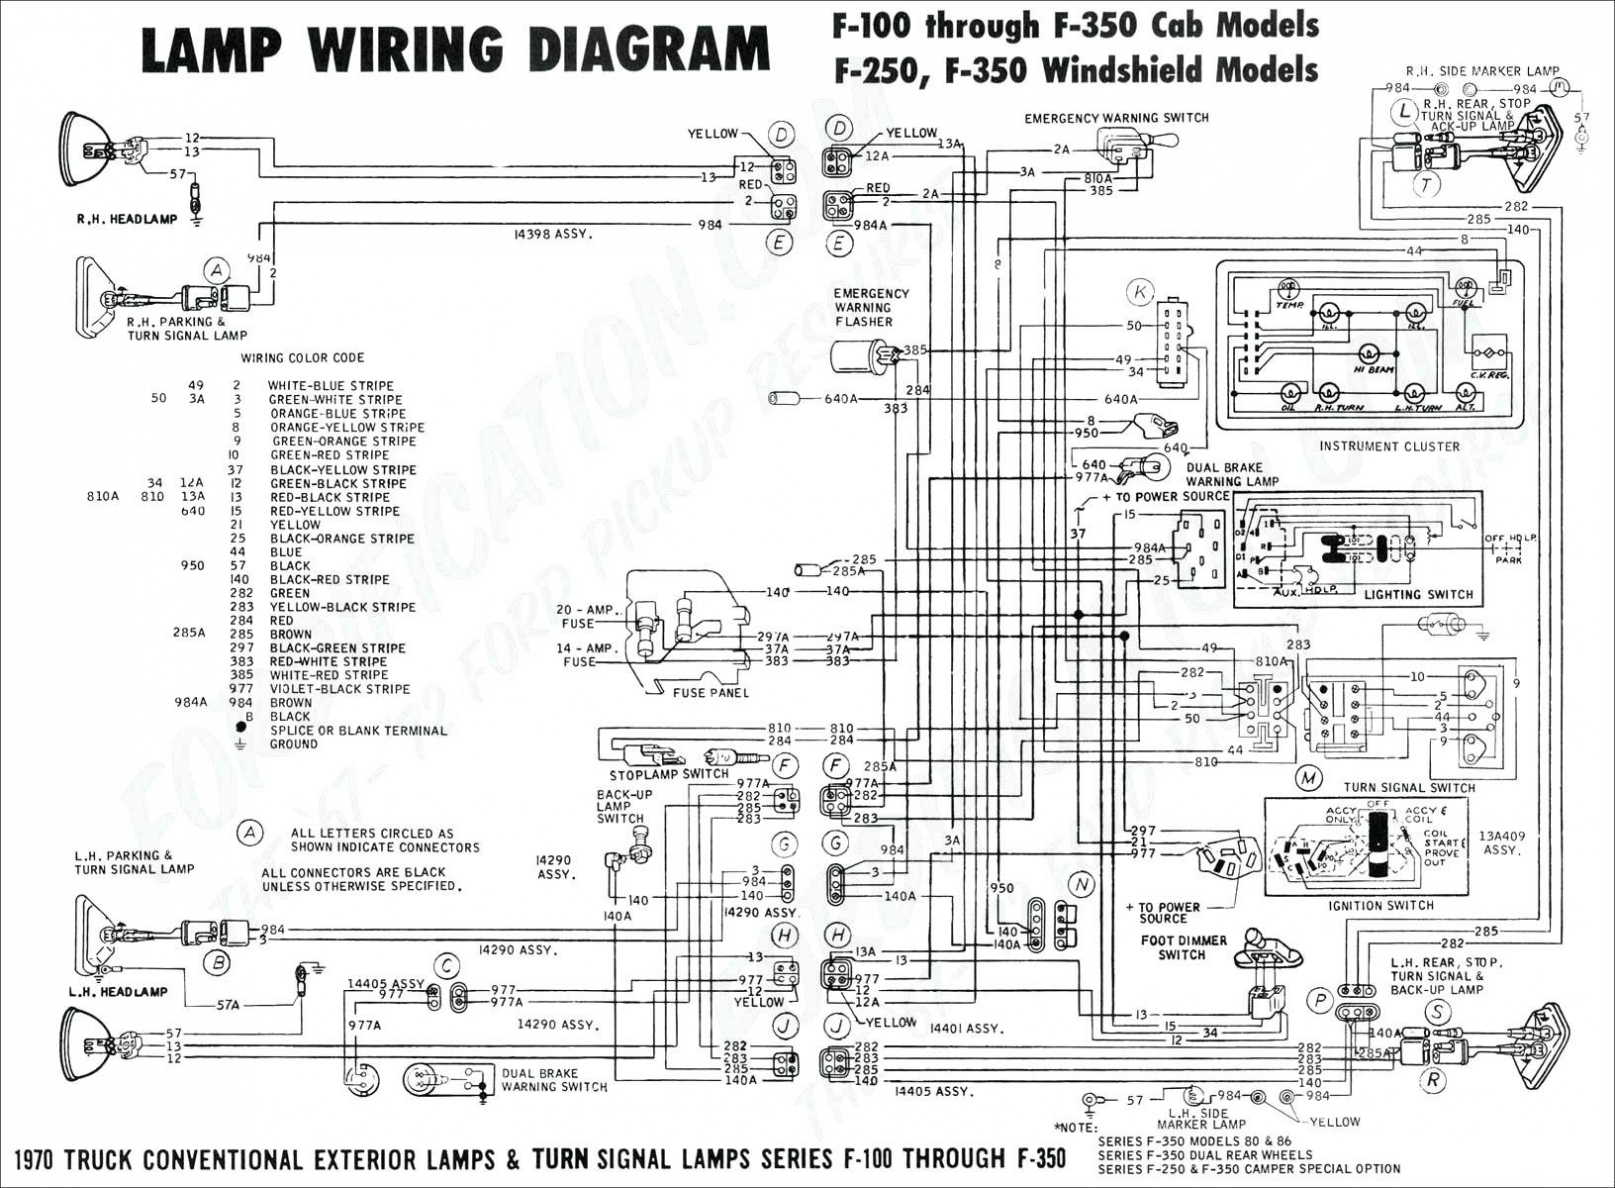 Ih 986 Wiring Diagram | Wiring Diagram Ih Wiring Diagram on ih 1466 exhaust, ford dexta wiring diagram, jd 4010 wiring diagram, ih 1466 cooling system, jd 3010 wiring diagram, ih 1466 tractor, jd 4455 wiring diagram, ih 1466 radio, ford naa wiring diagram, jd 4430 wiring diagram, jd 4020 wiring diagram, jd 4320 wiring diagram, mf 245 wiring diagram, jd 7520 wiring diagram, ford 3000 wiring diagram, ih 1466 power, ih 1466 brochure, ford 8340 wiring diagram,